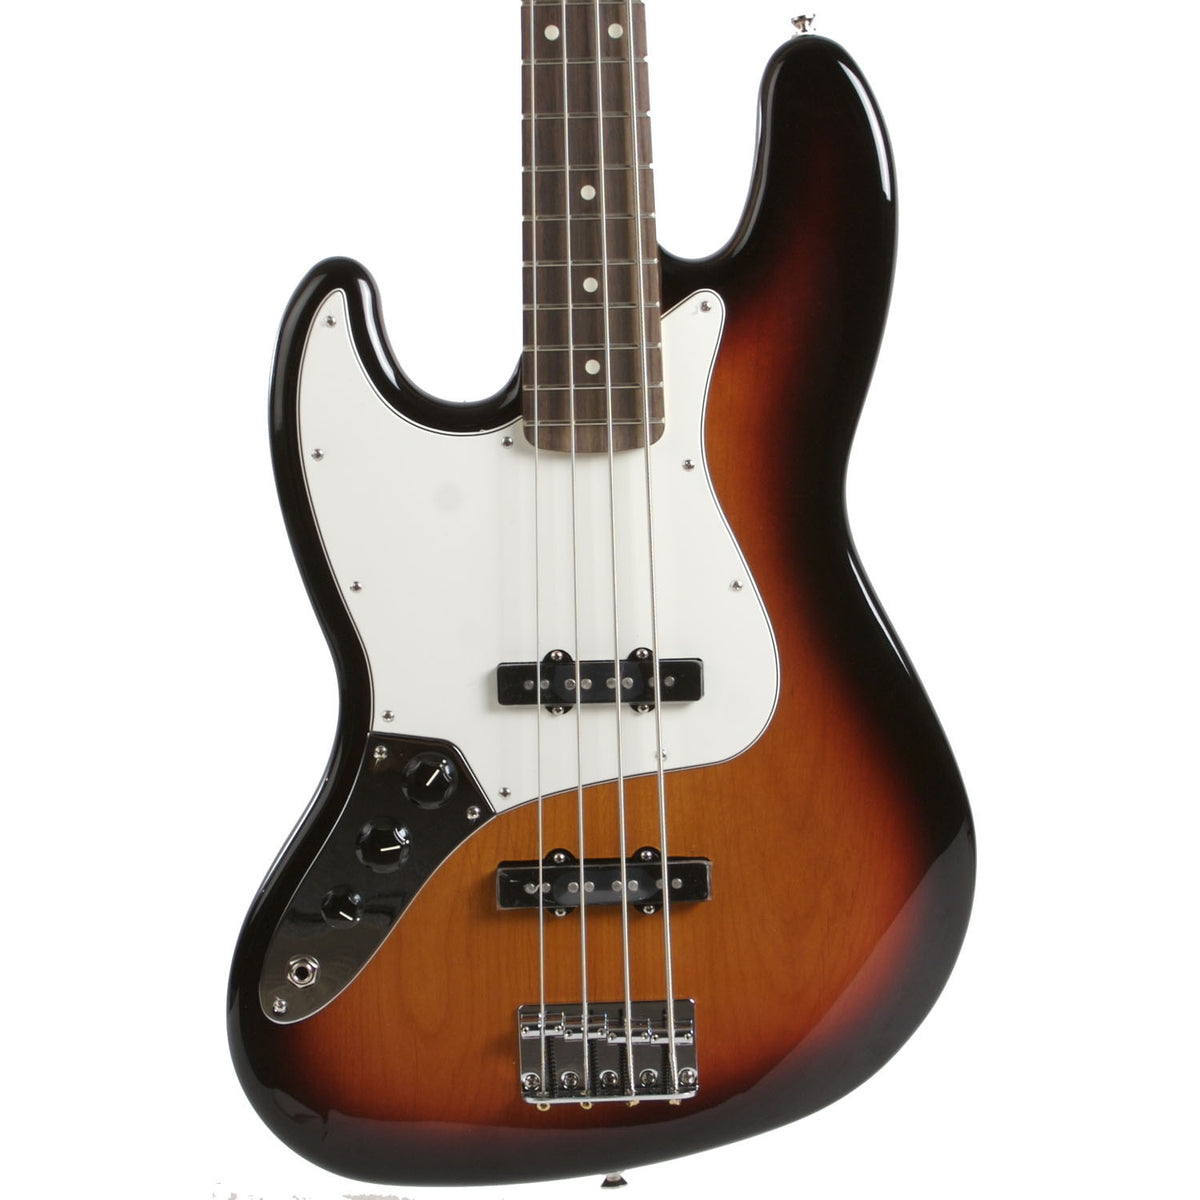 2015 Fender Standard Jazz Bass Lefty Sunburst - Garrett Park Guitars  - 2